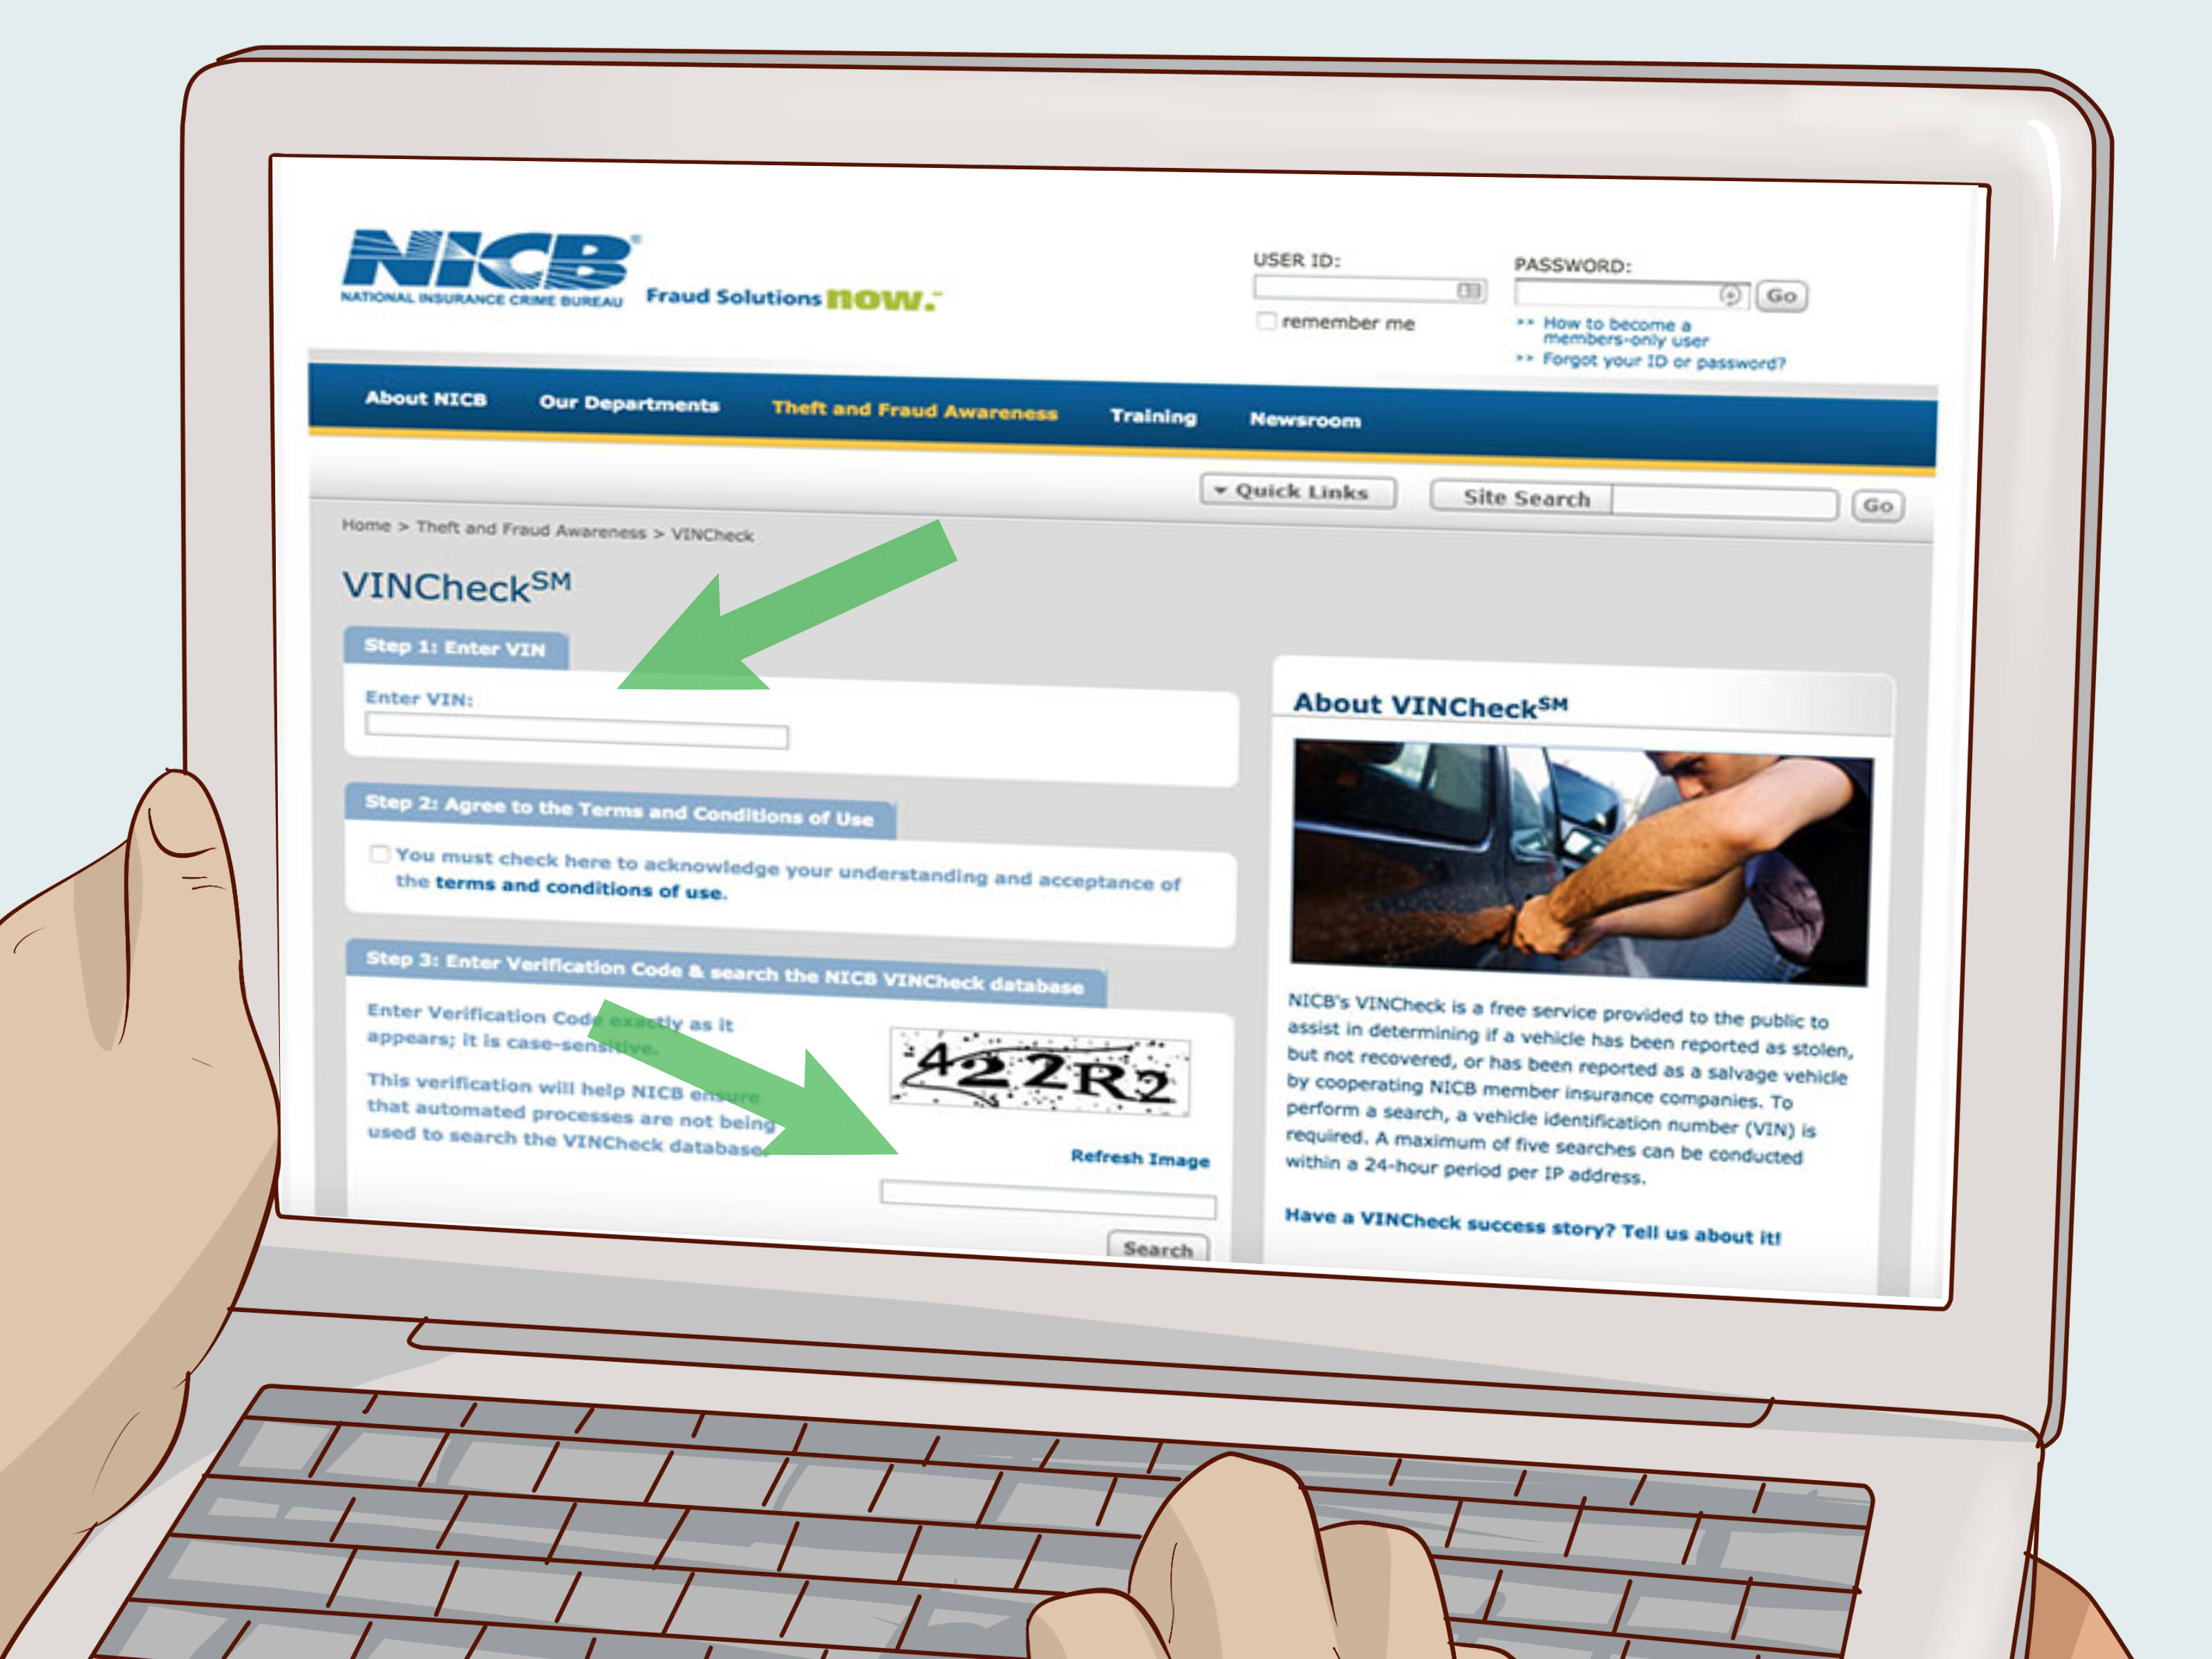 Show Me the Carfax Free Beautiful 4 Ways to Check Vehicle History for Free Wikihow